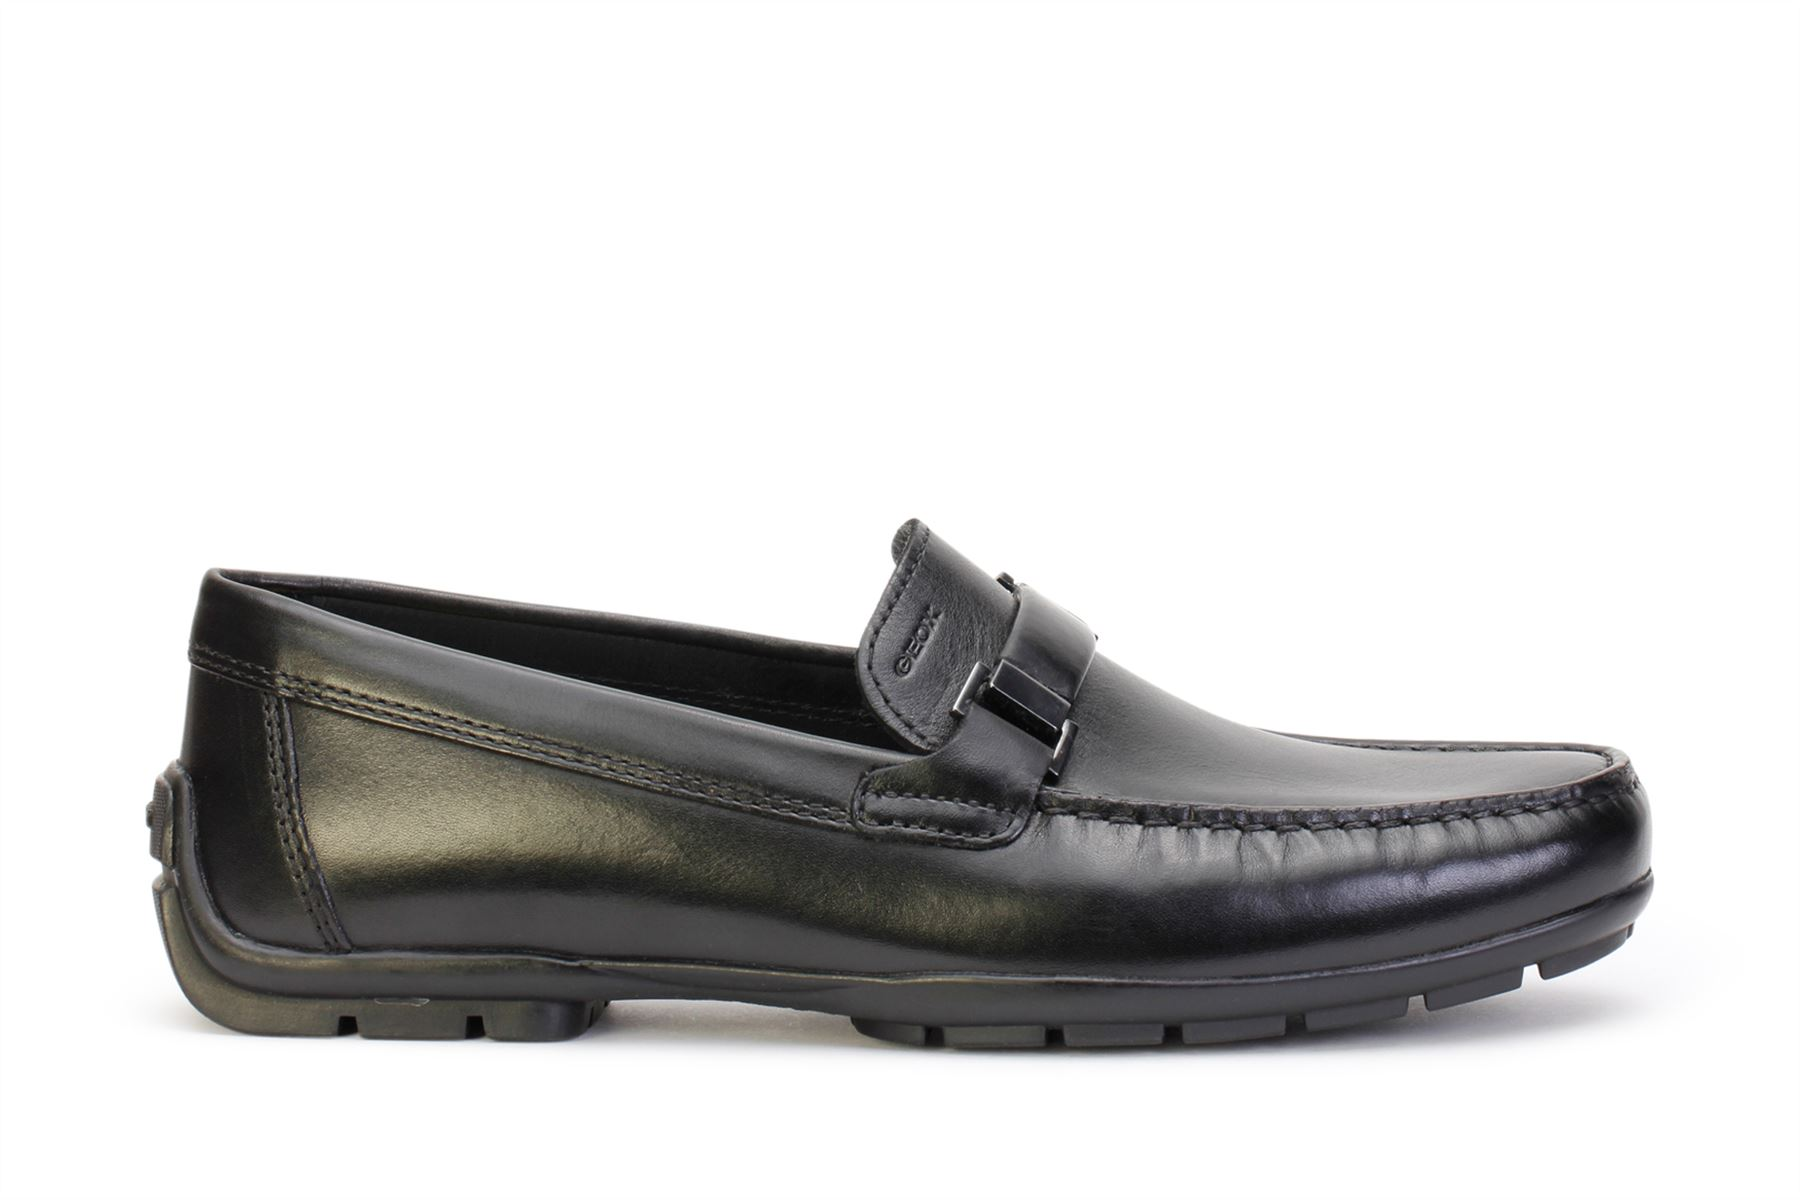 9aaacf68ee Details about Geox Men's Slip On Shoes U Moner W 2Fit Black Leather U74Q6A